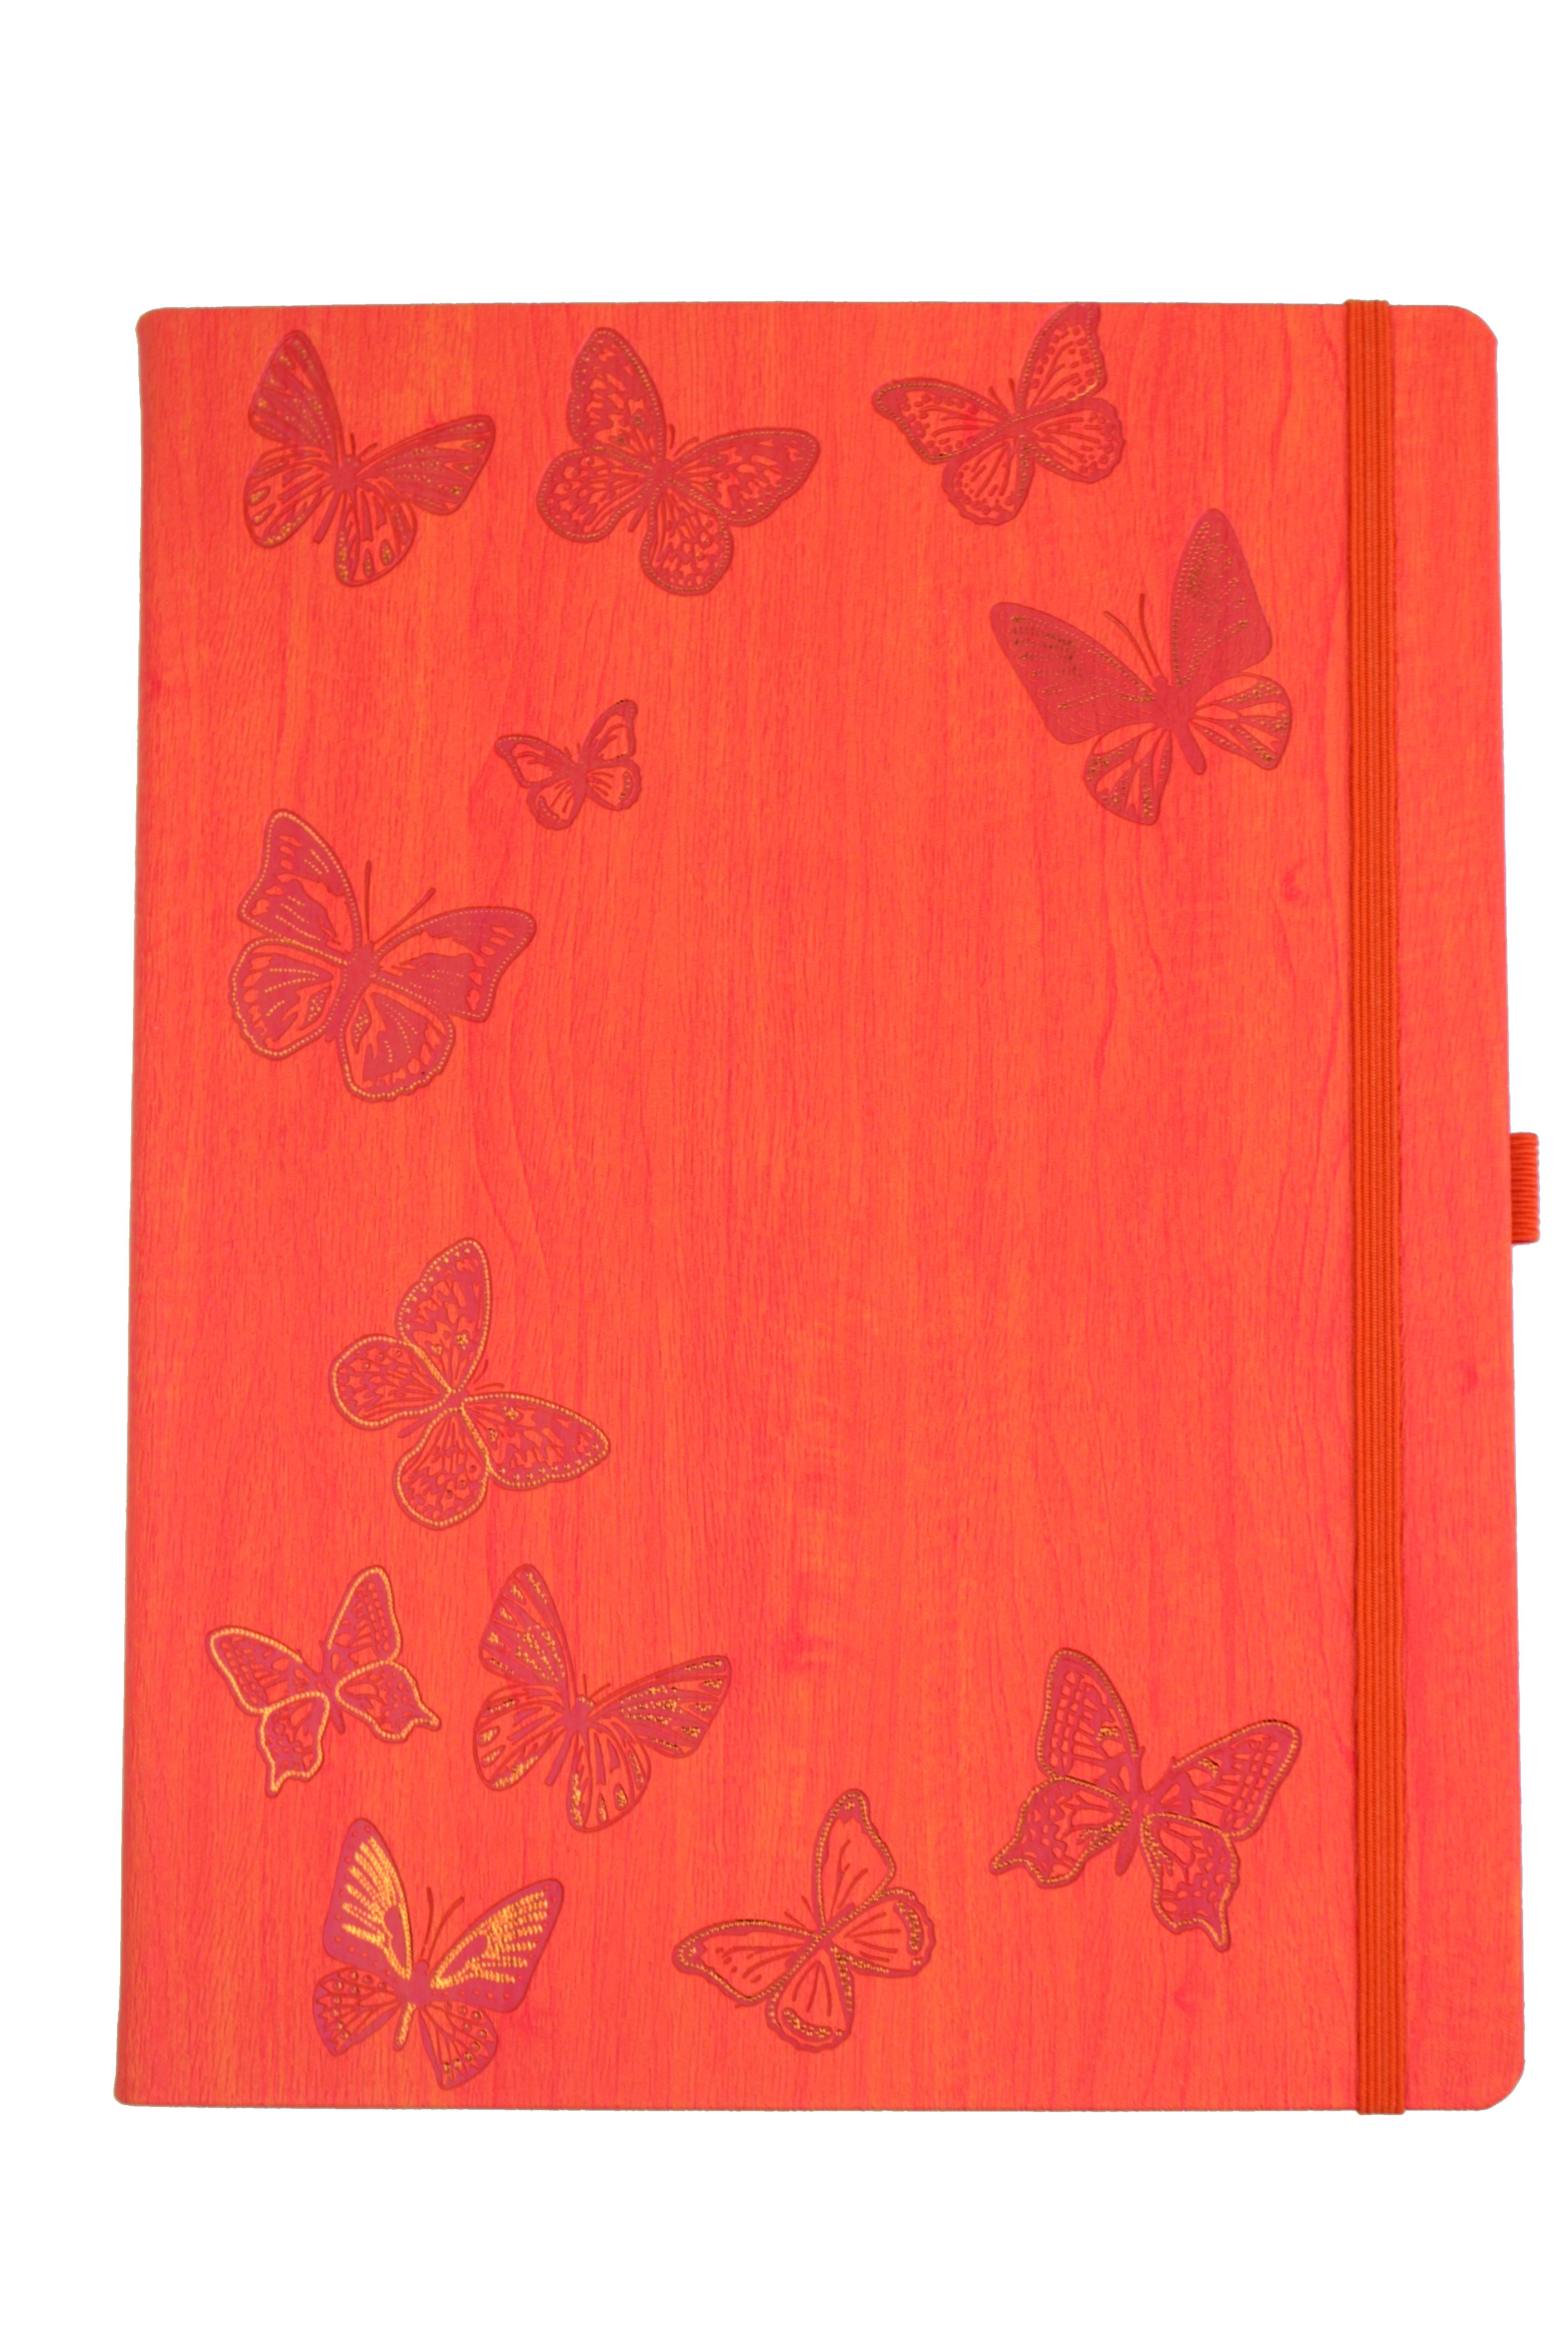 IVORY NATURE/PAPILLONS ORANGE 19 X 25 CM 240 PAGES